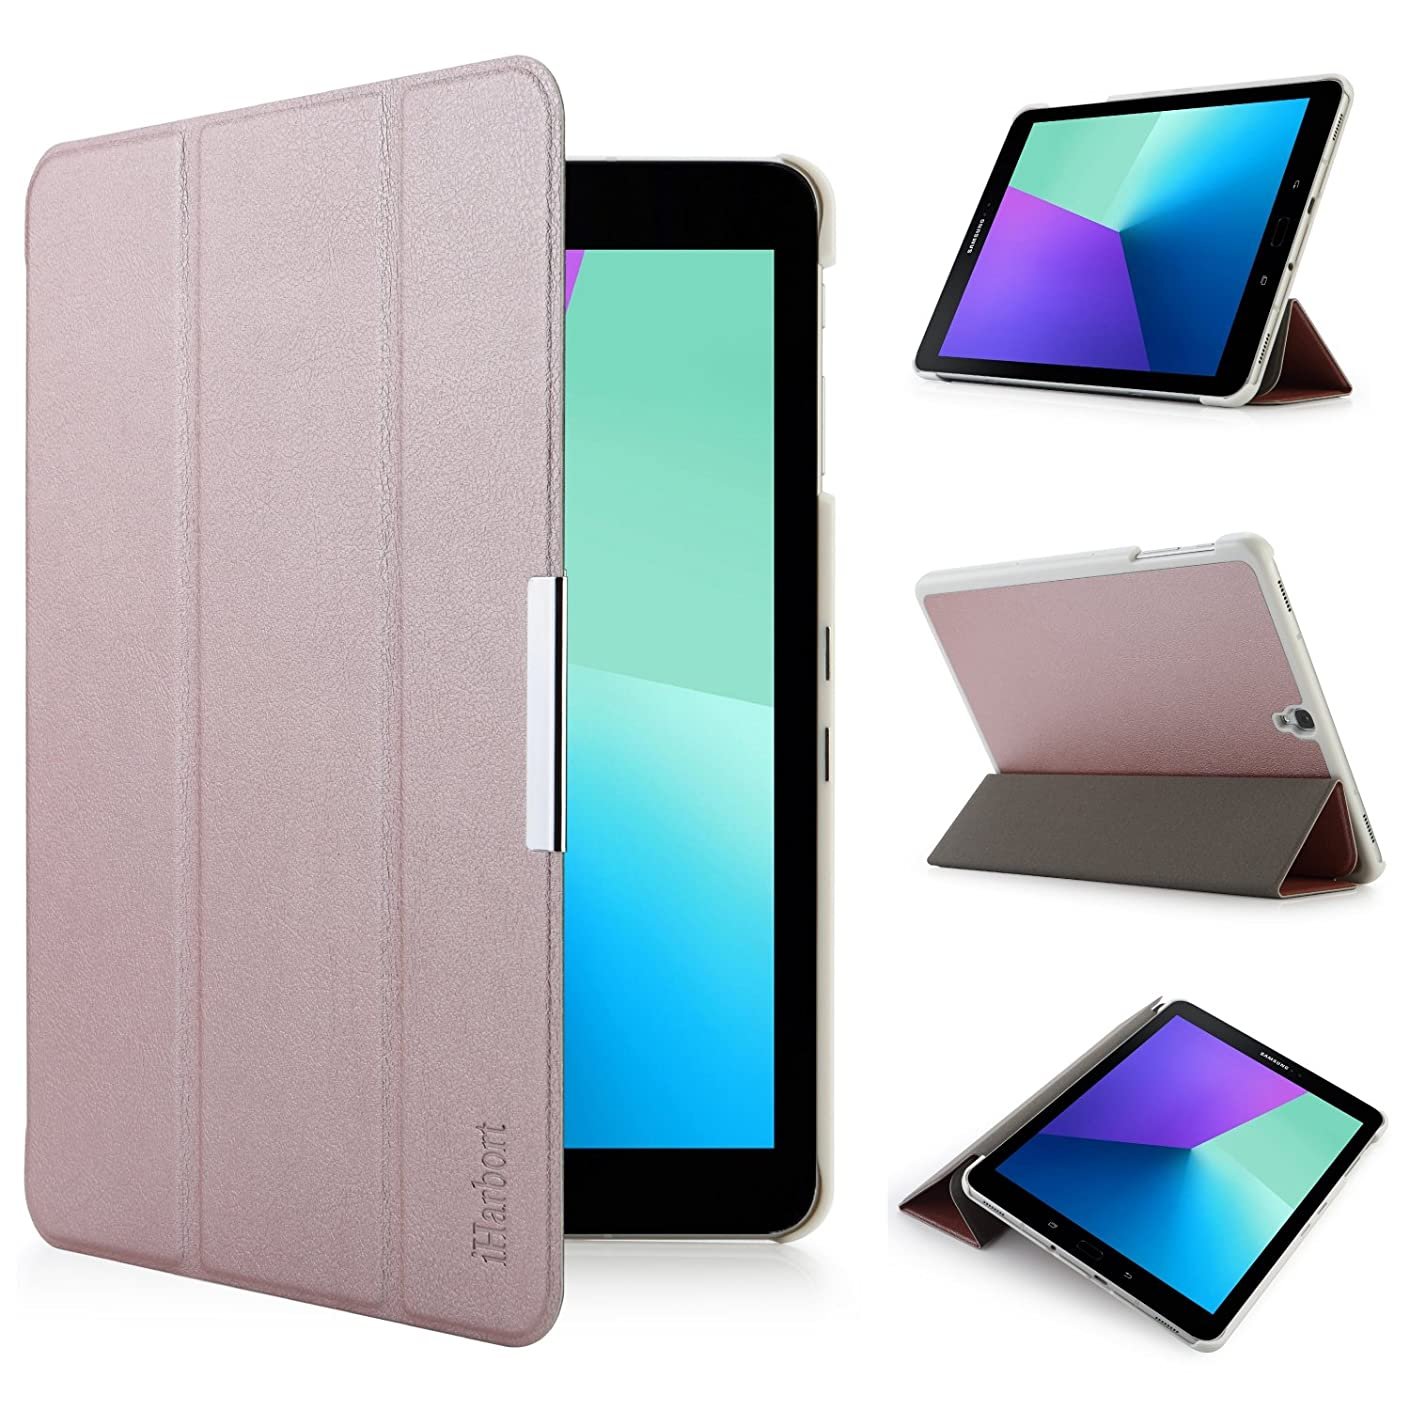 iHarbort Samsung Galaxy Tab S3 9.7 case (SM-T820 T825) - Ultra Slim Lightweight Smart-case Holder Stand Leather Case, with Smart Auto Wake/Sleep Function (Rose Gold)